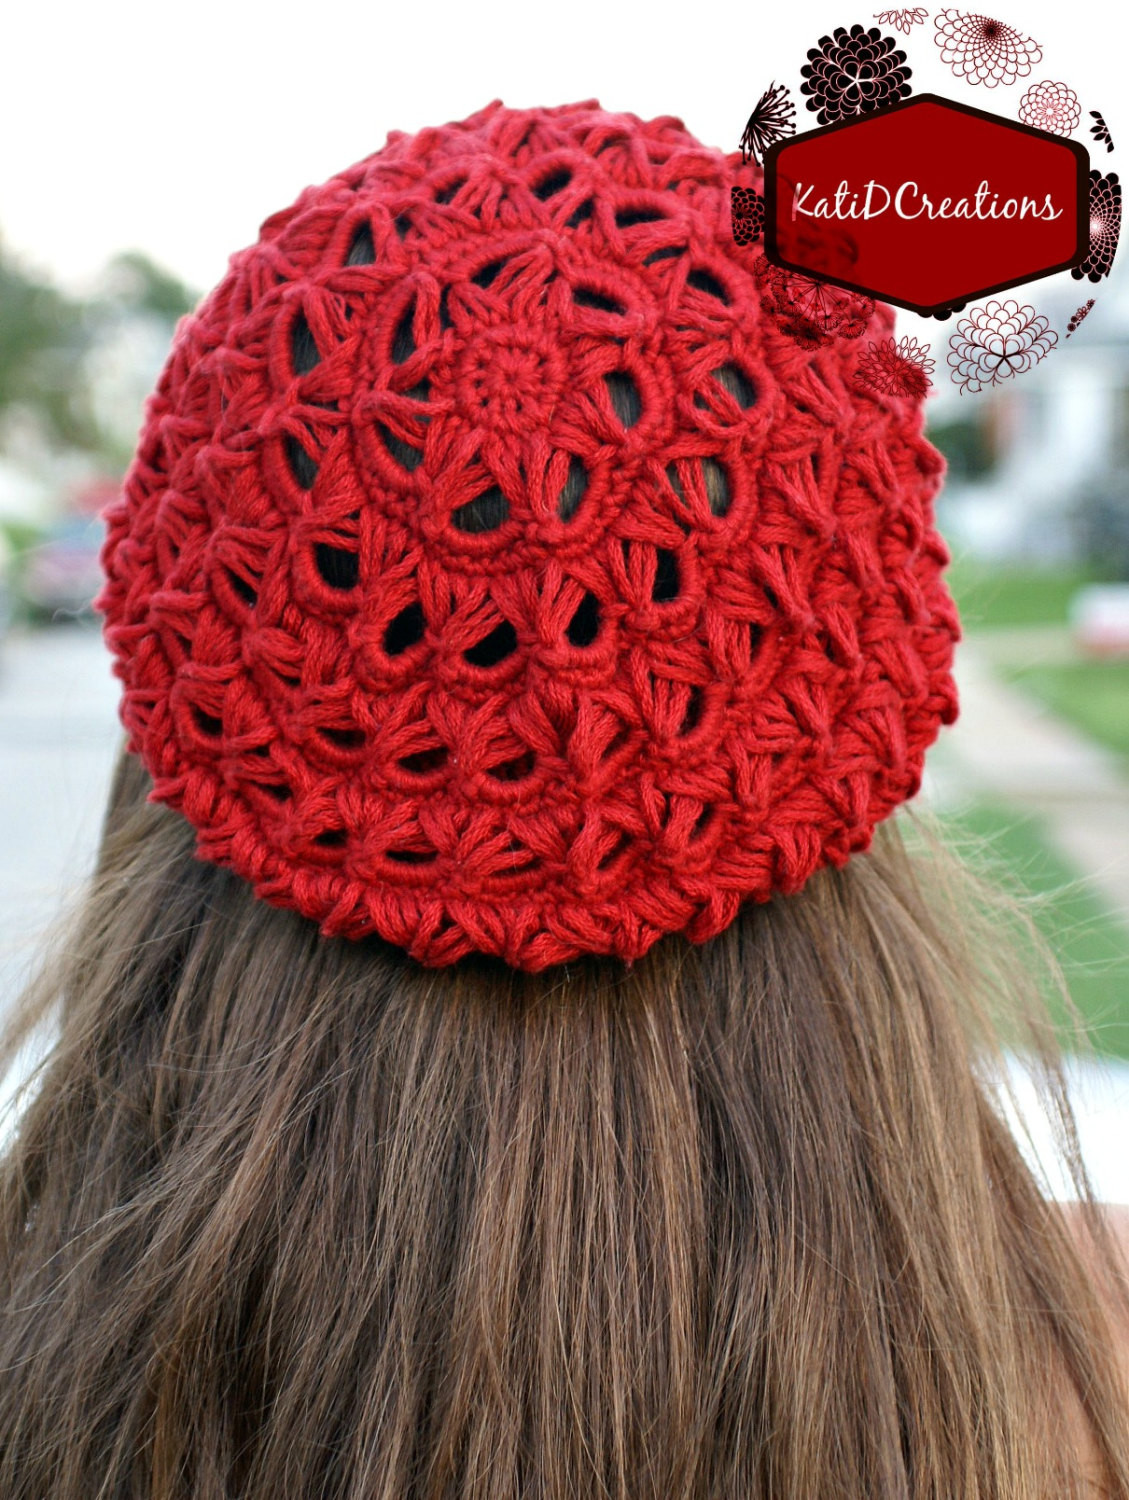 Awesome Broomstick Lace Crochet Slouchy Hat Beret Broomstick Lace Free Slouchy Hat Pattern Of Amazing 45 Photos Free Slouchy Hat Pattern